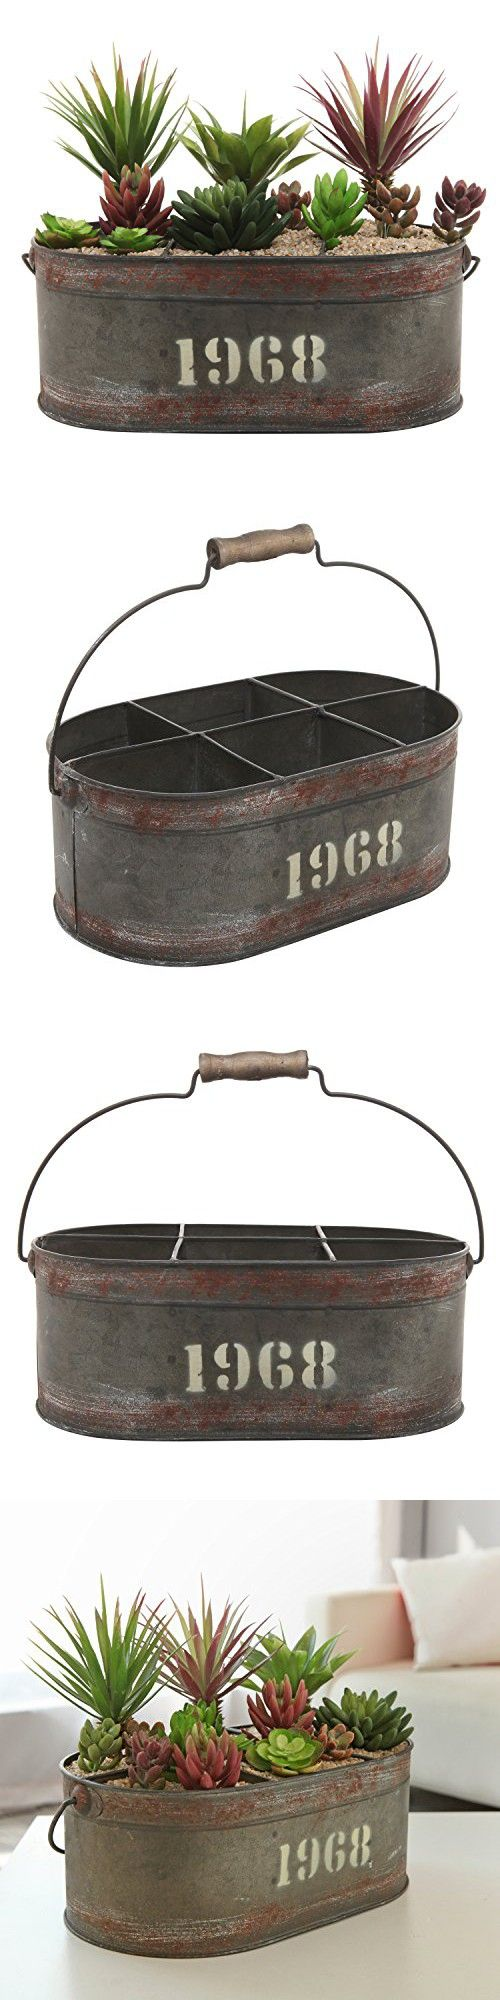 MyGift Industrial Metal Display Bucket, 6 Compartment Decorative Box, Gray